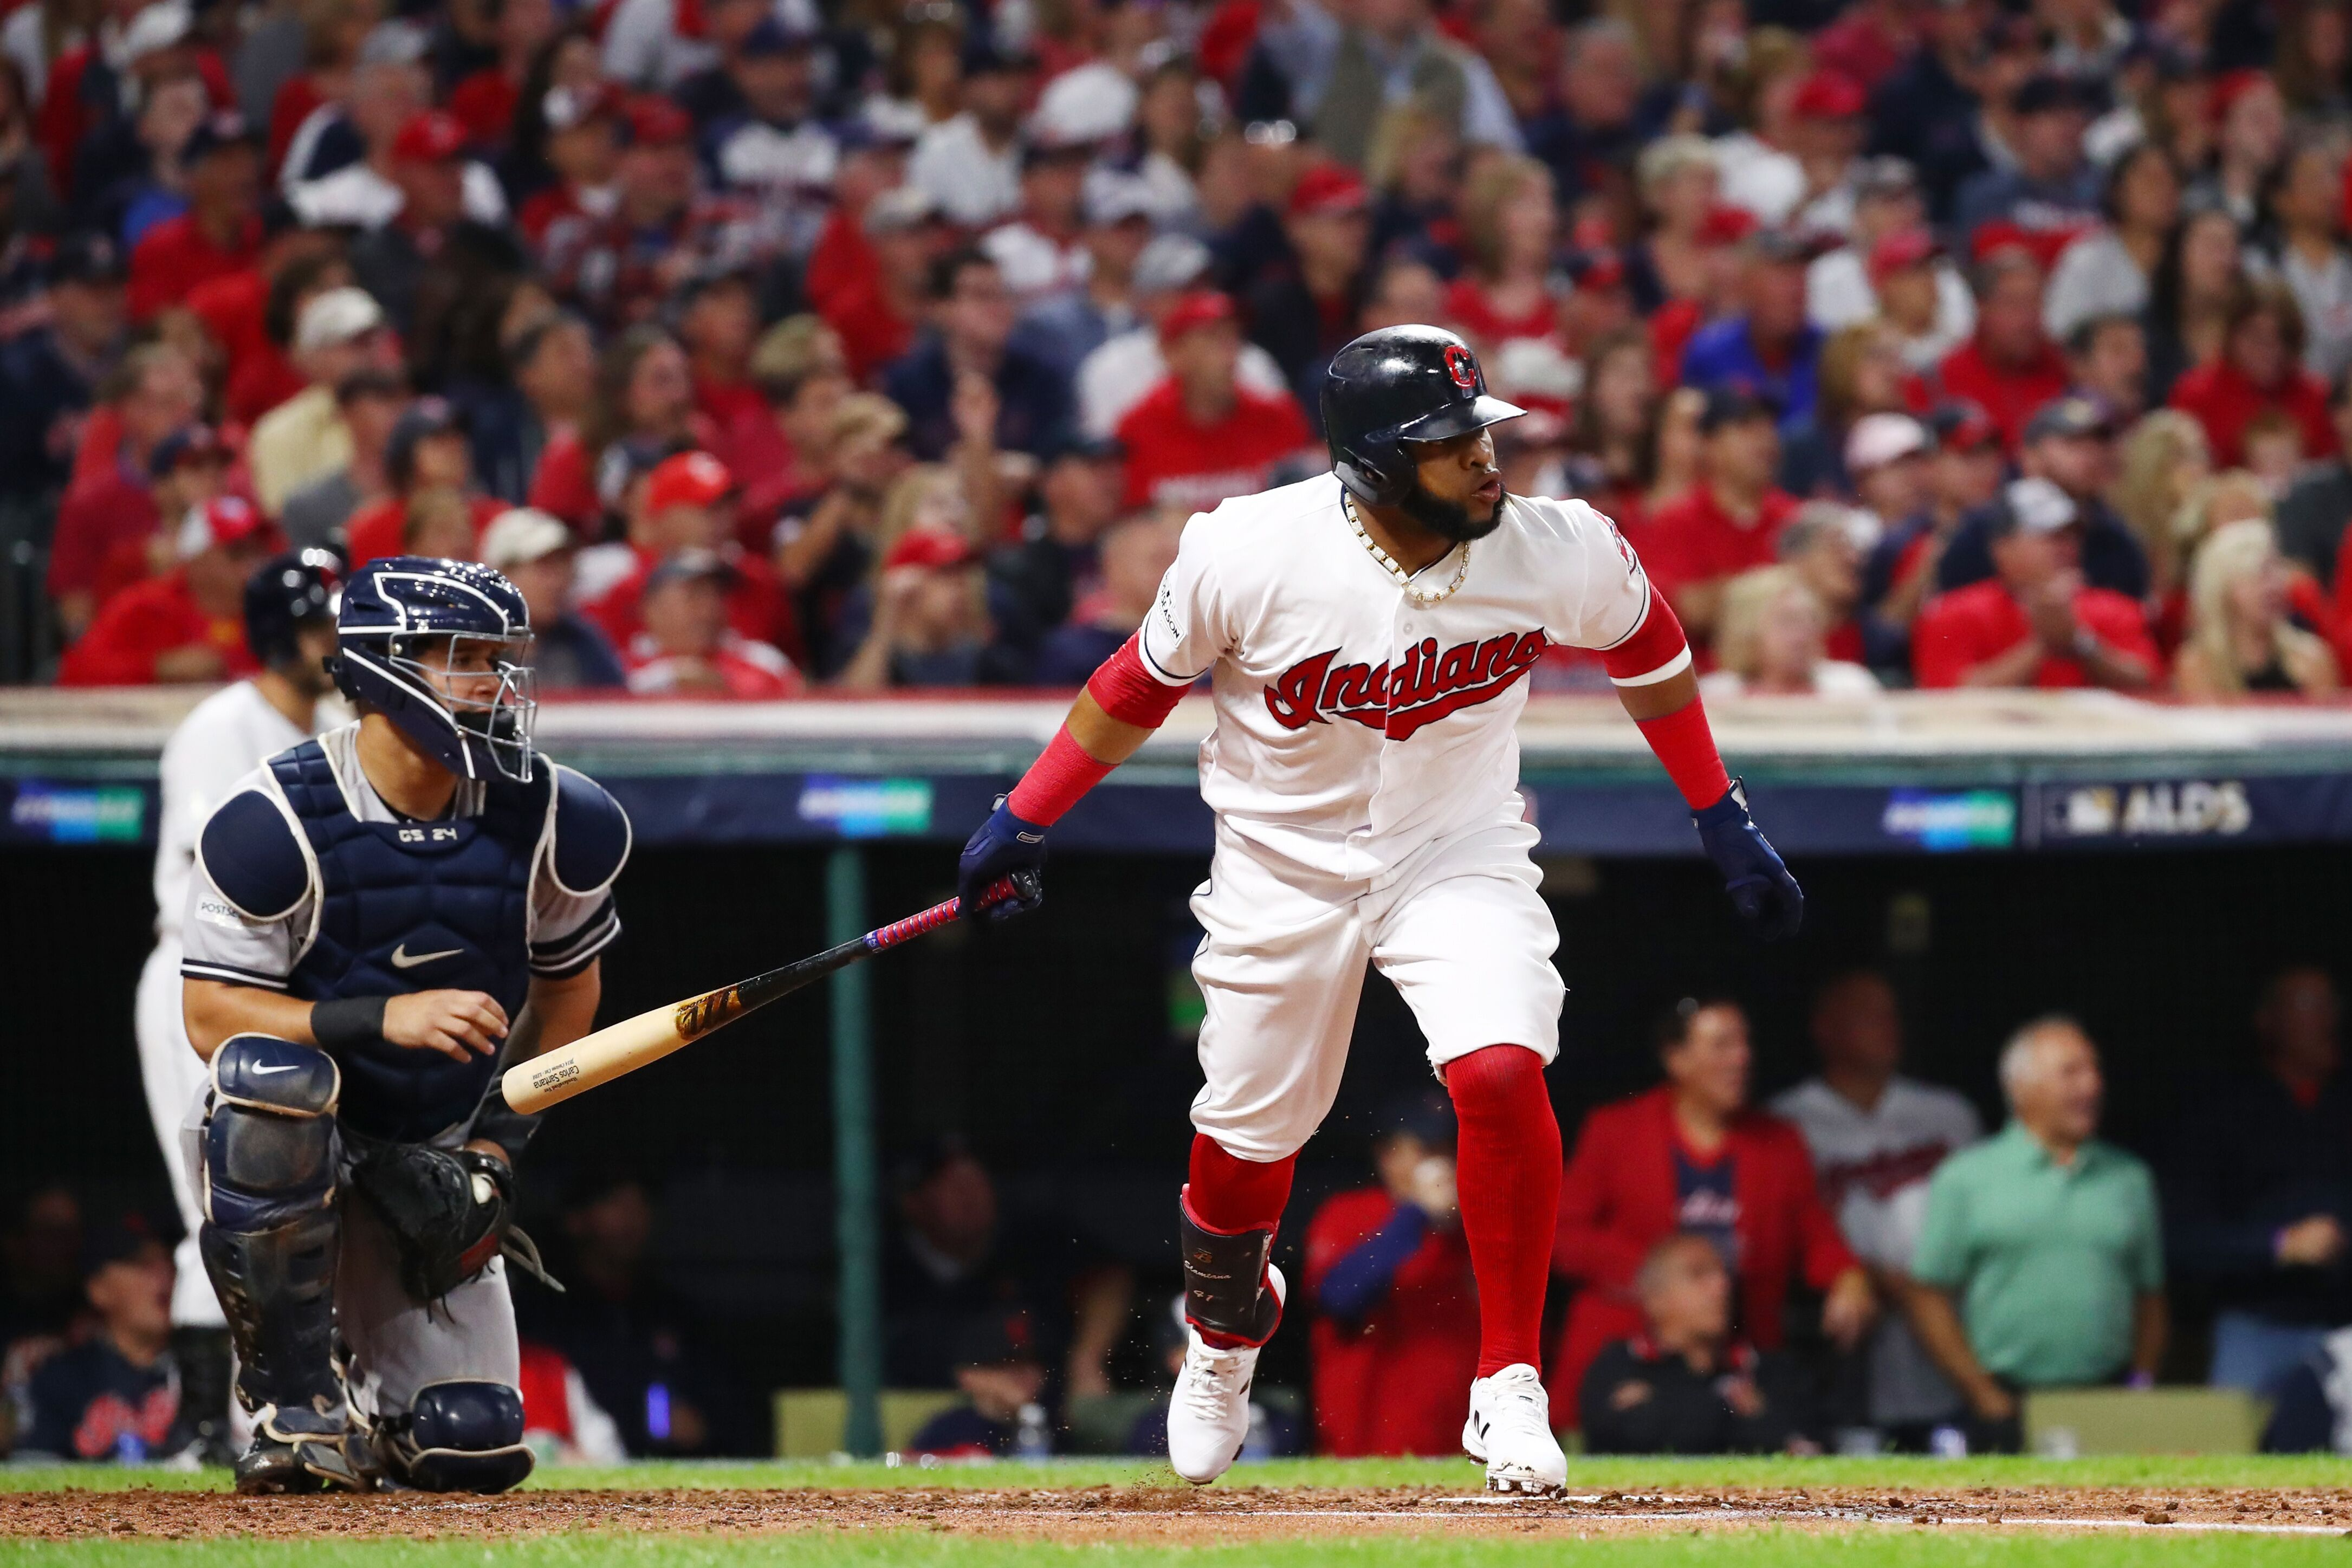 858050822-divisional-round-new-york-yankees-v-cleveland-indians-game-one.jpg